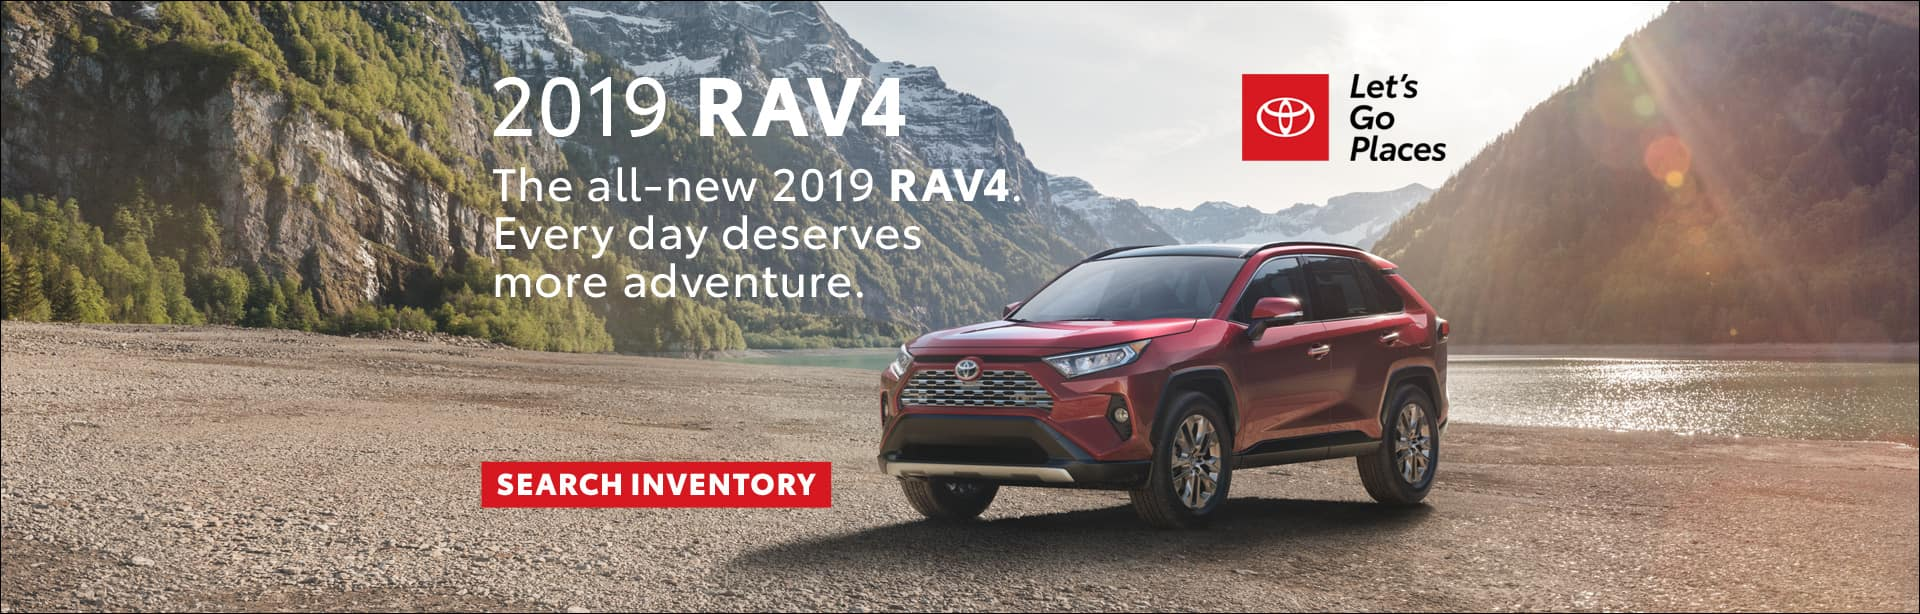 All New RAV4 at Cain Toyota North Canton Ohio